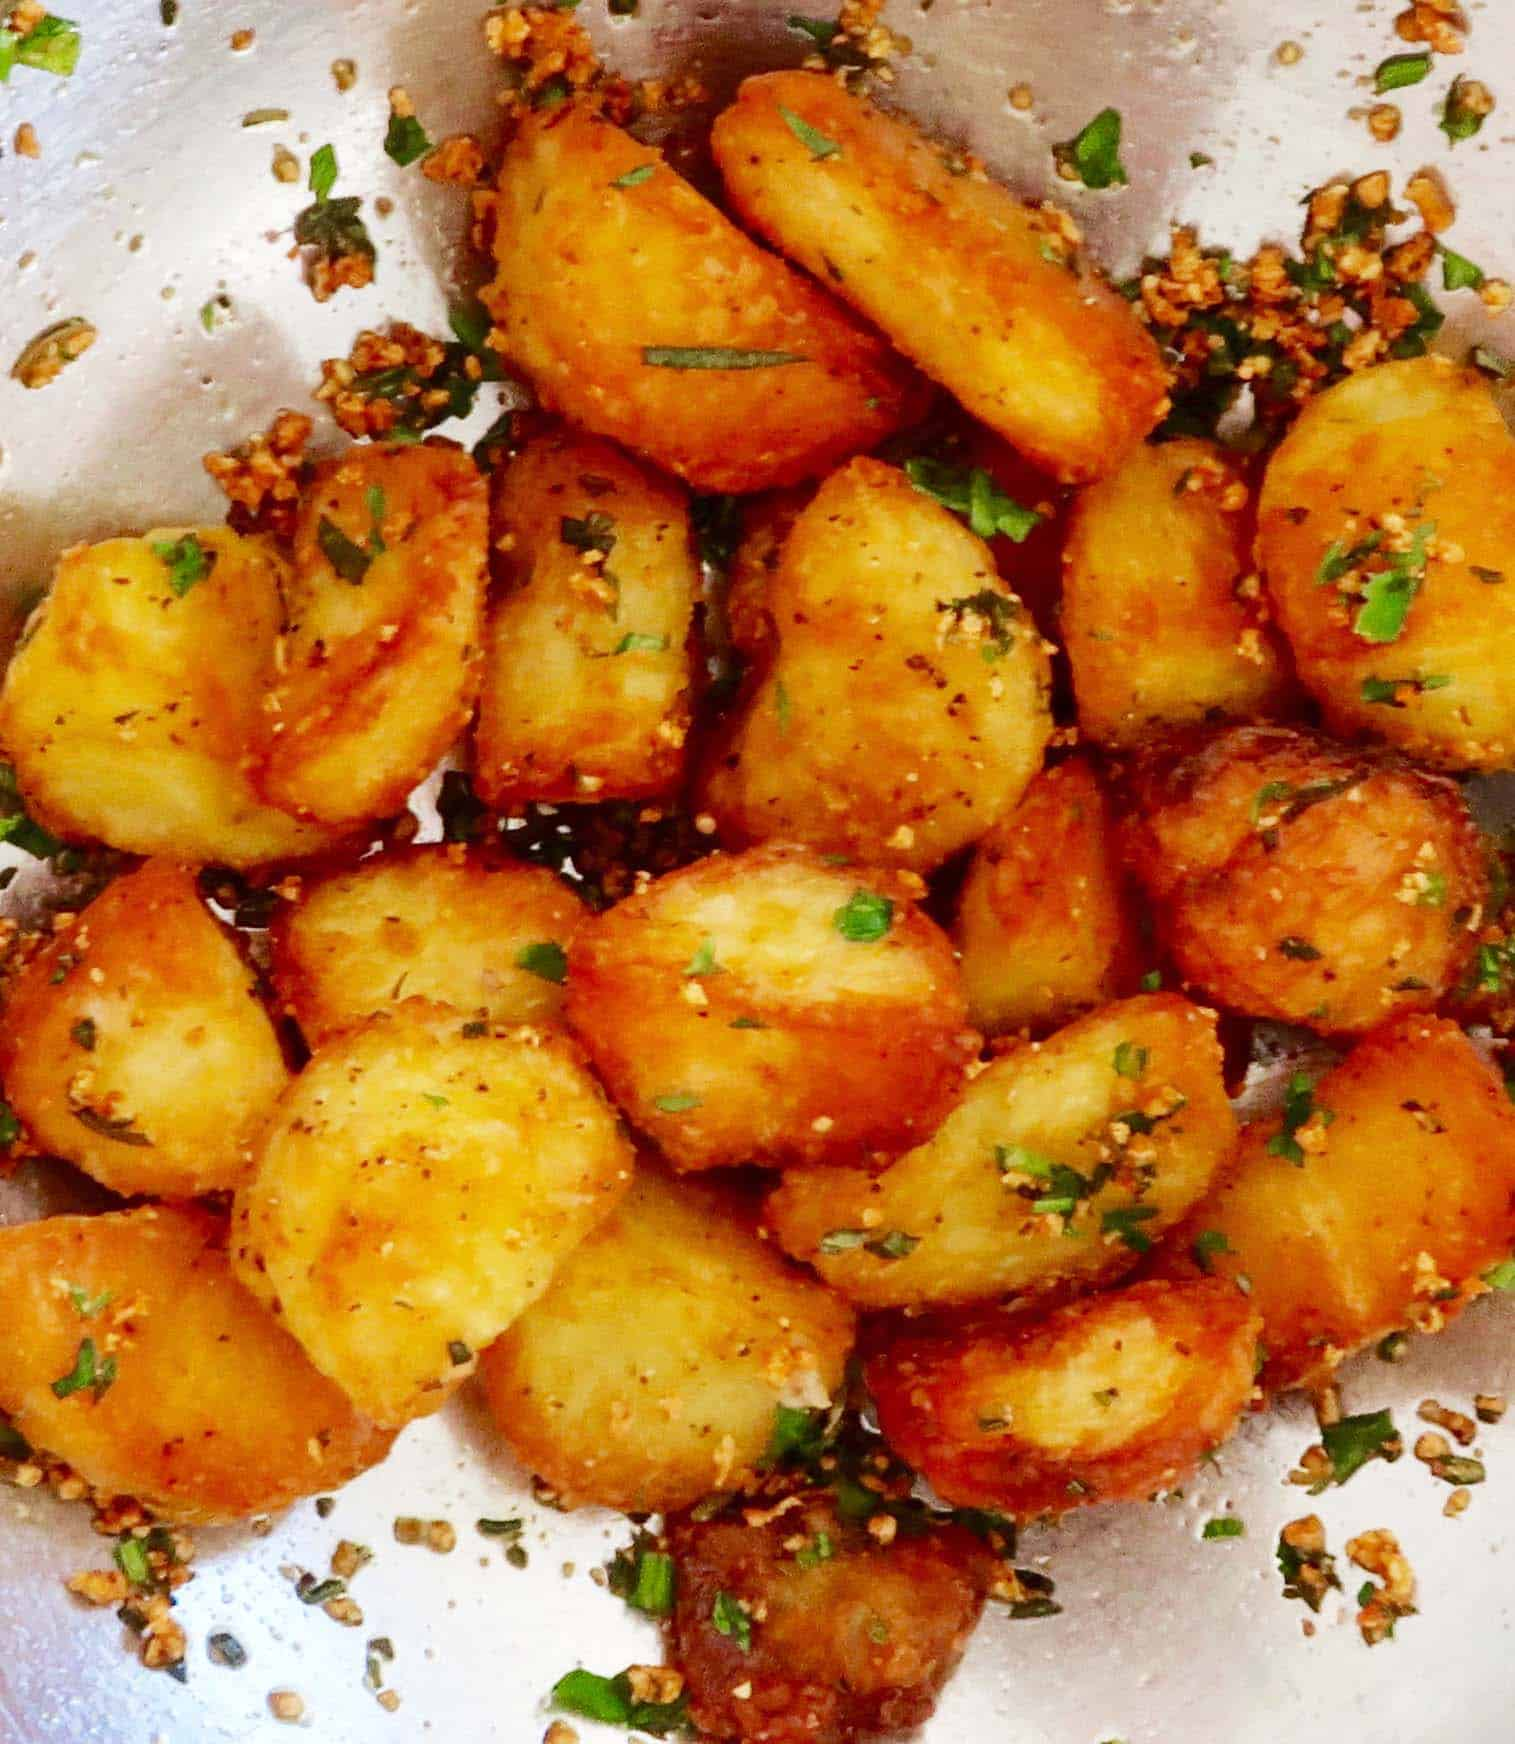 crispy roast potatoes in a metal bowl with parsley